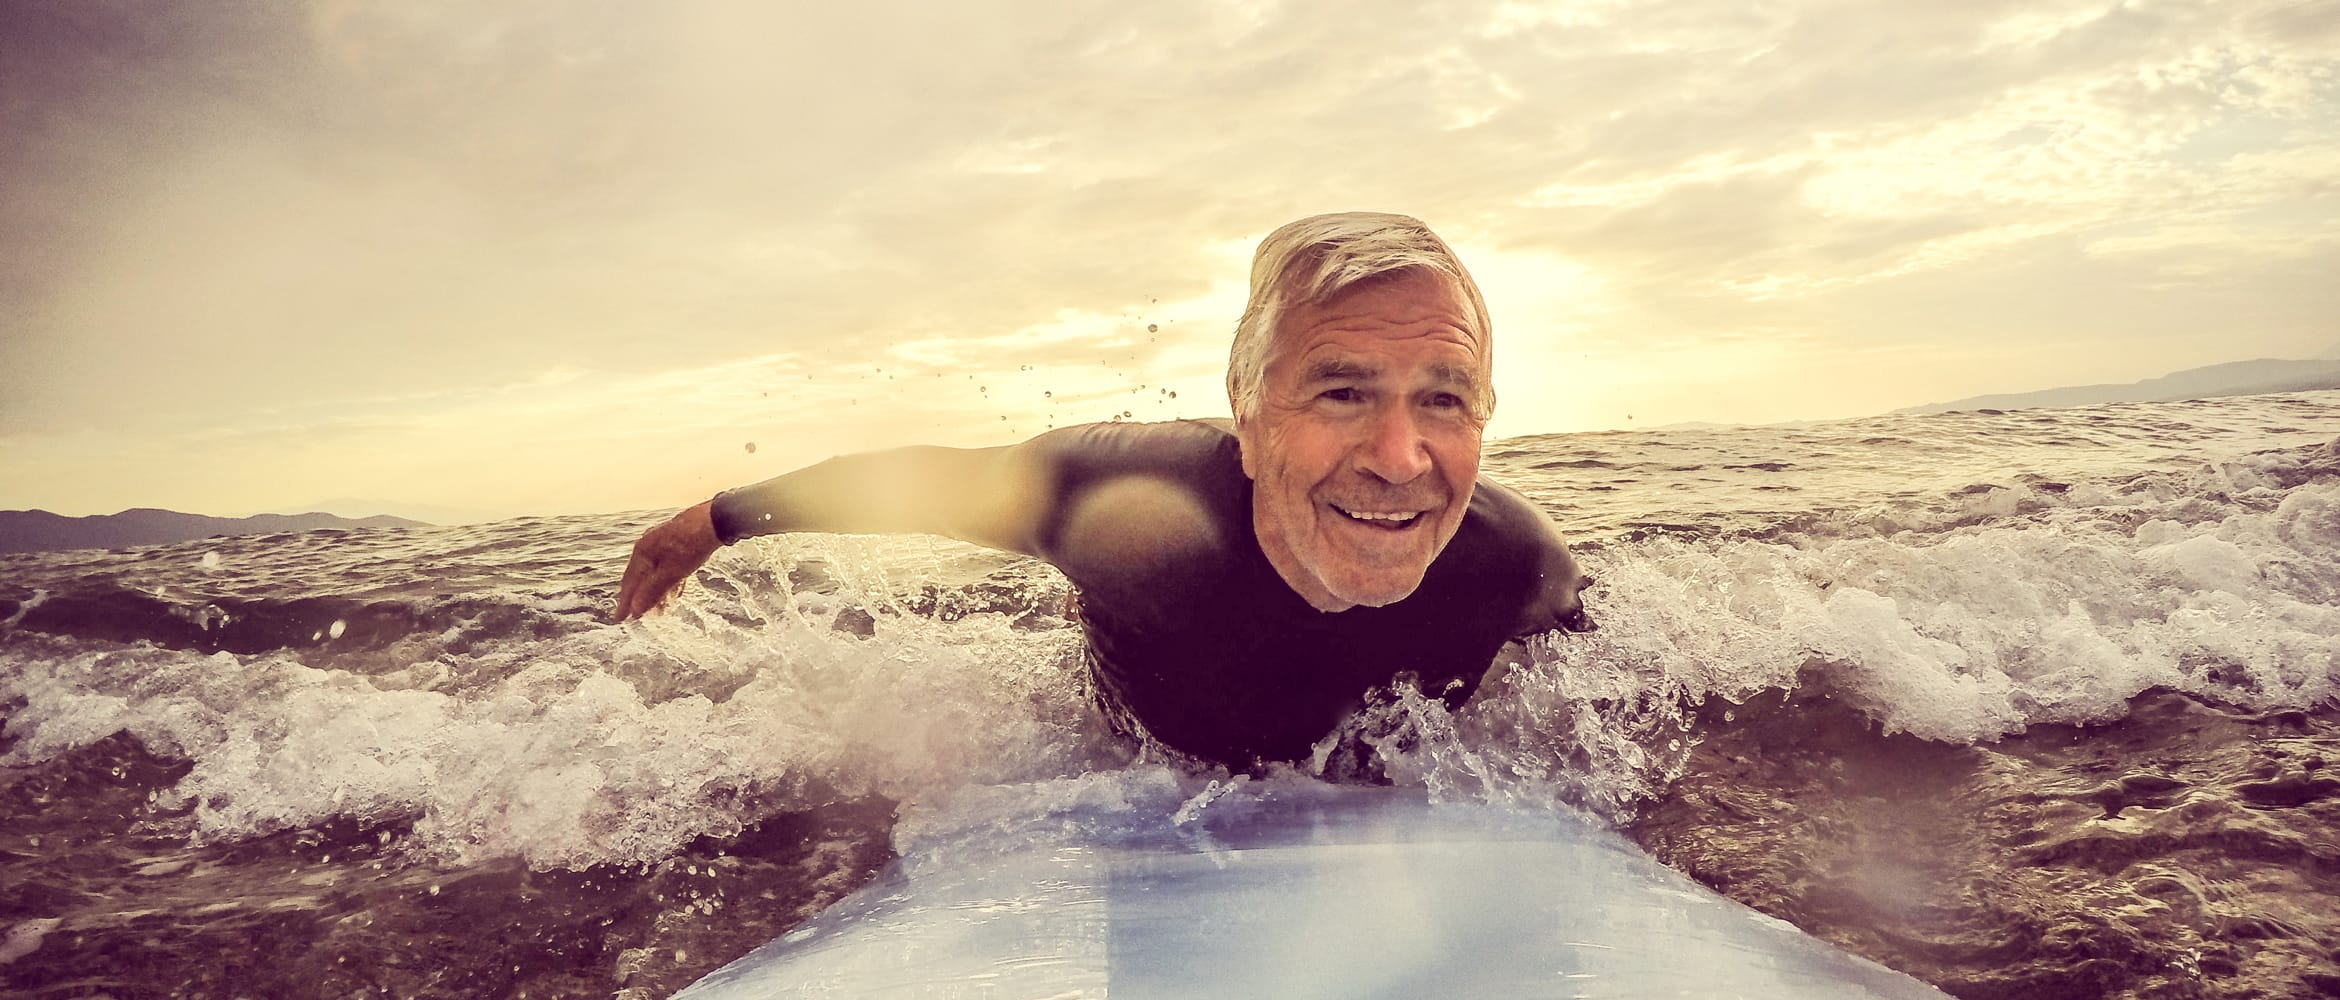 older man surfing